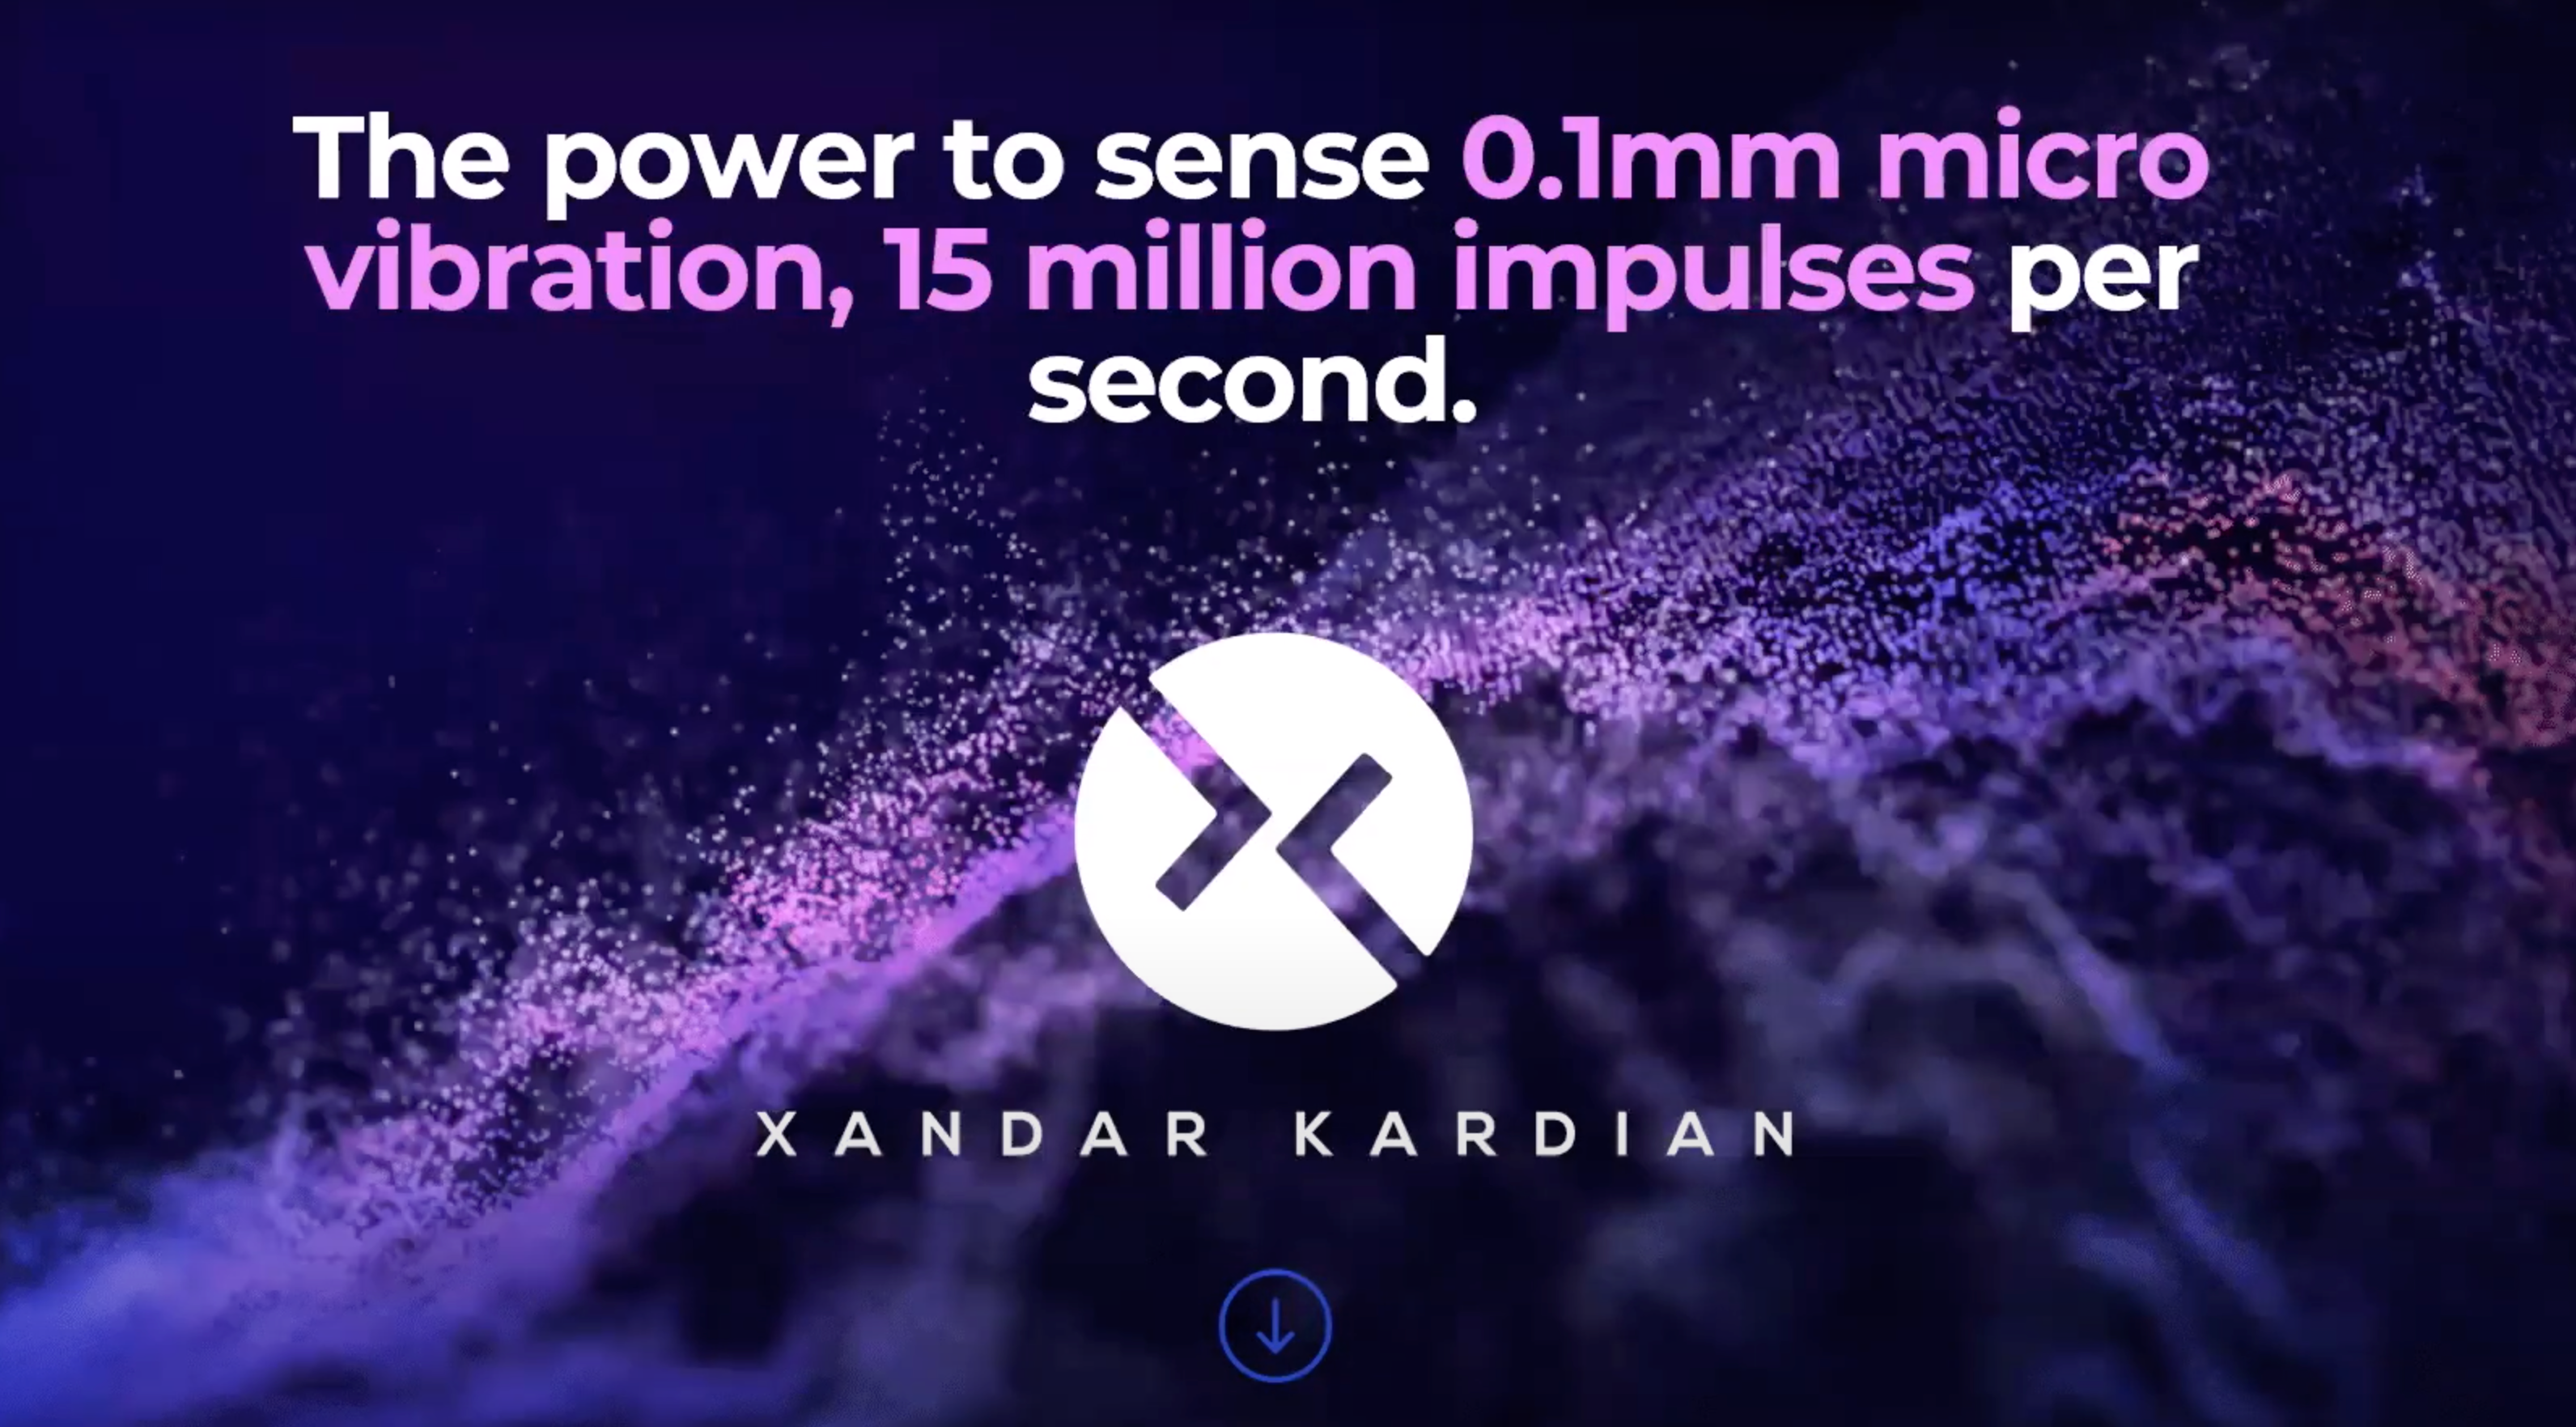 Xandar Kardian – Radar-based Vital Sign Sensor